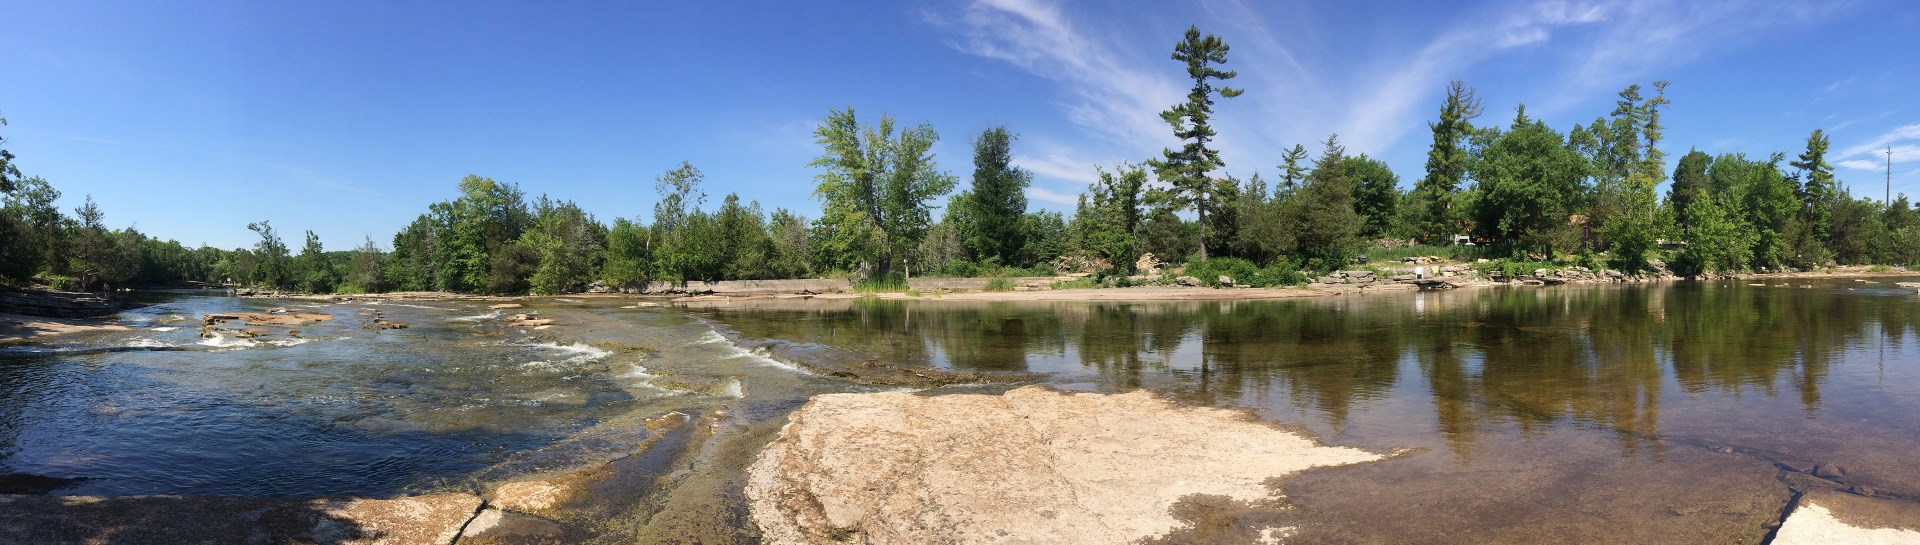 Landscape image of Crowe Bridge Conservation Area swimming hole